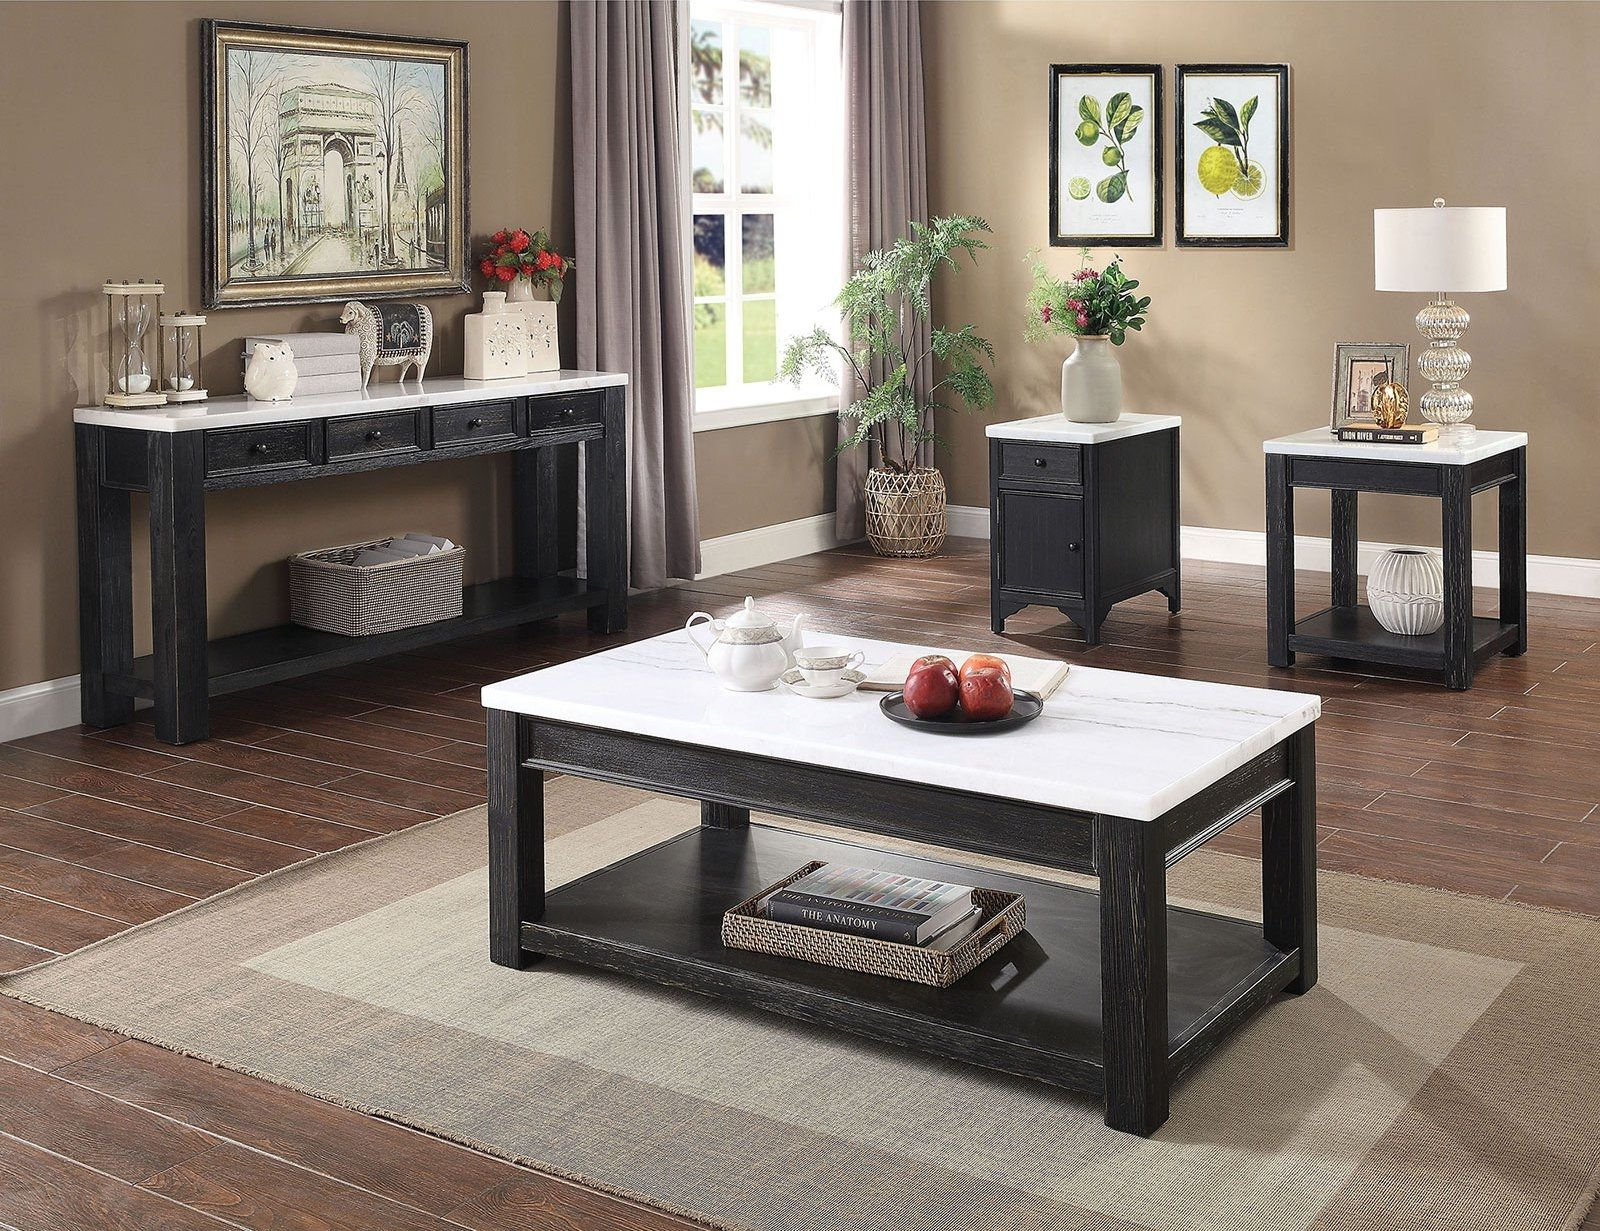 Mcgill Coffee Table Cm4337c Furniture Of America Coffee Tables In 2021 Living Room Table Sets Marble Top Coffee Table Living Room Table [ 1231 x 1600 Pixel ]